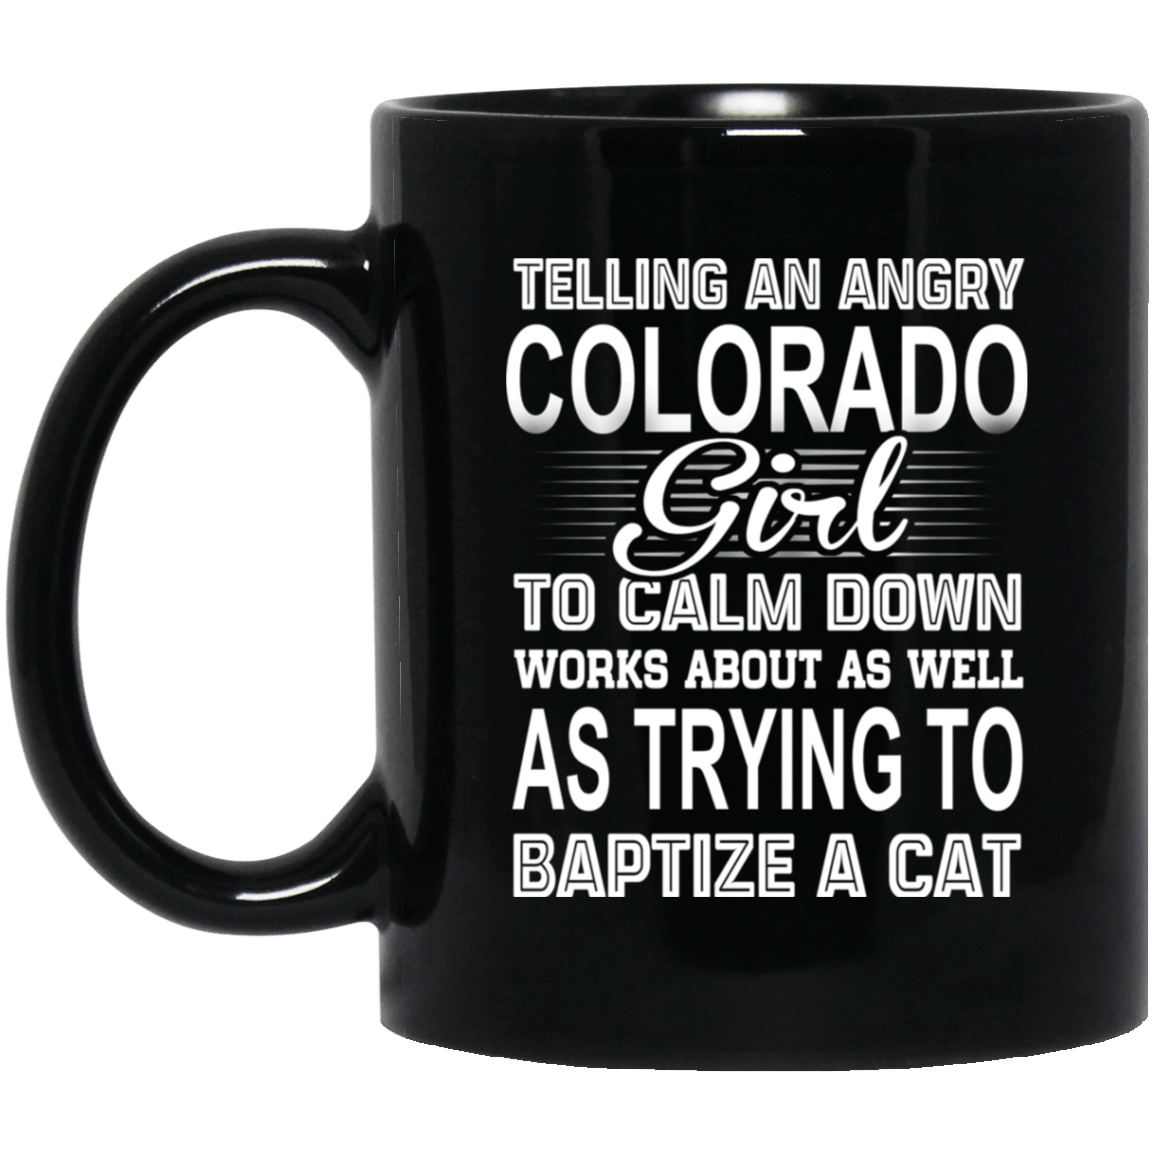 Telling An Angry Colorado Girl To Calm Down Works About As Well As Trying To Baptize A Cat Mug 1065-10181-76151920-49307 - Tee Ript